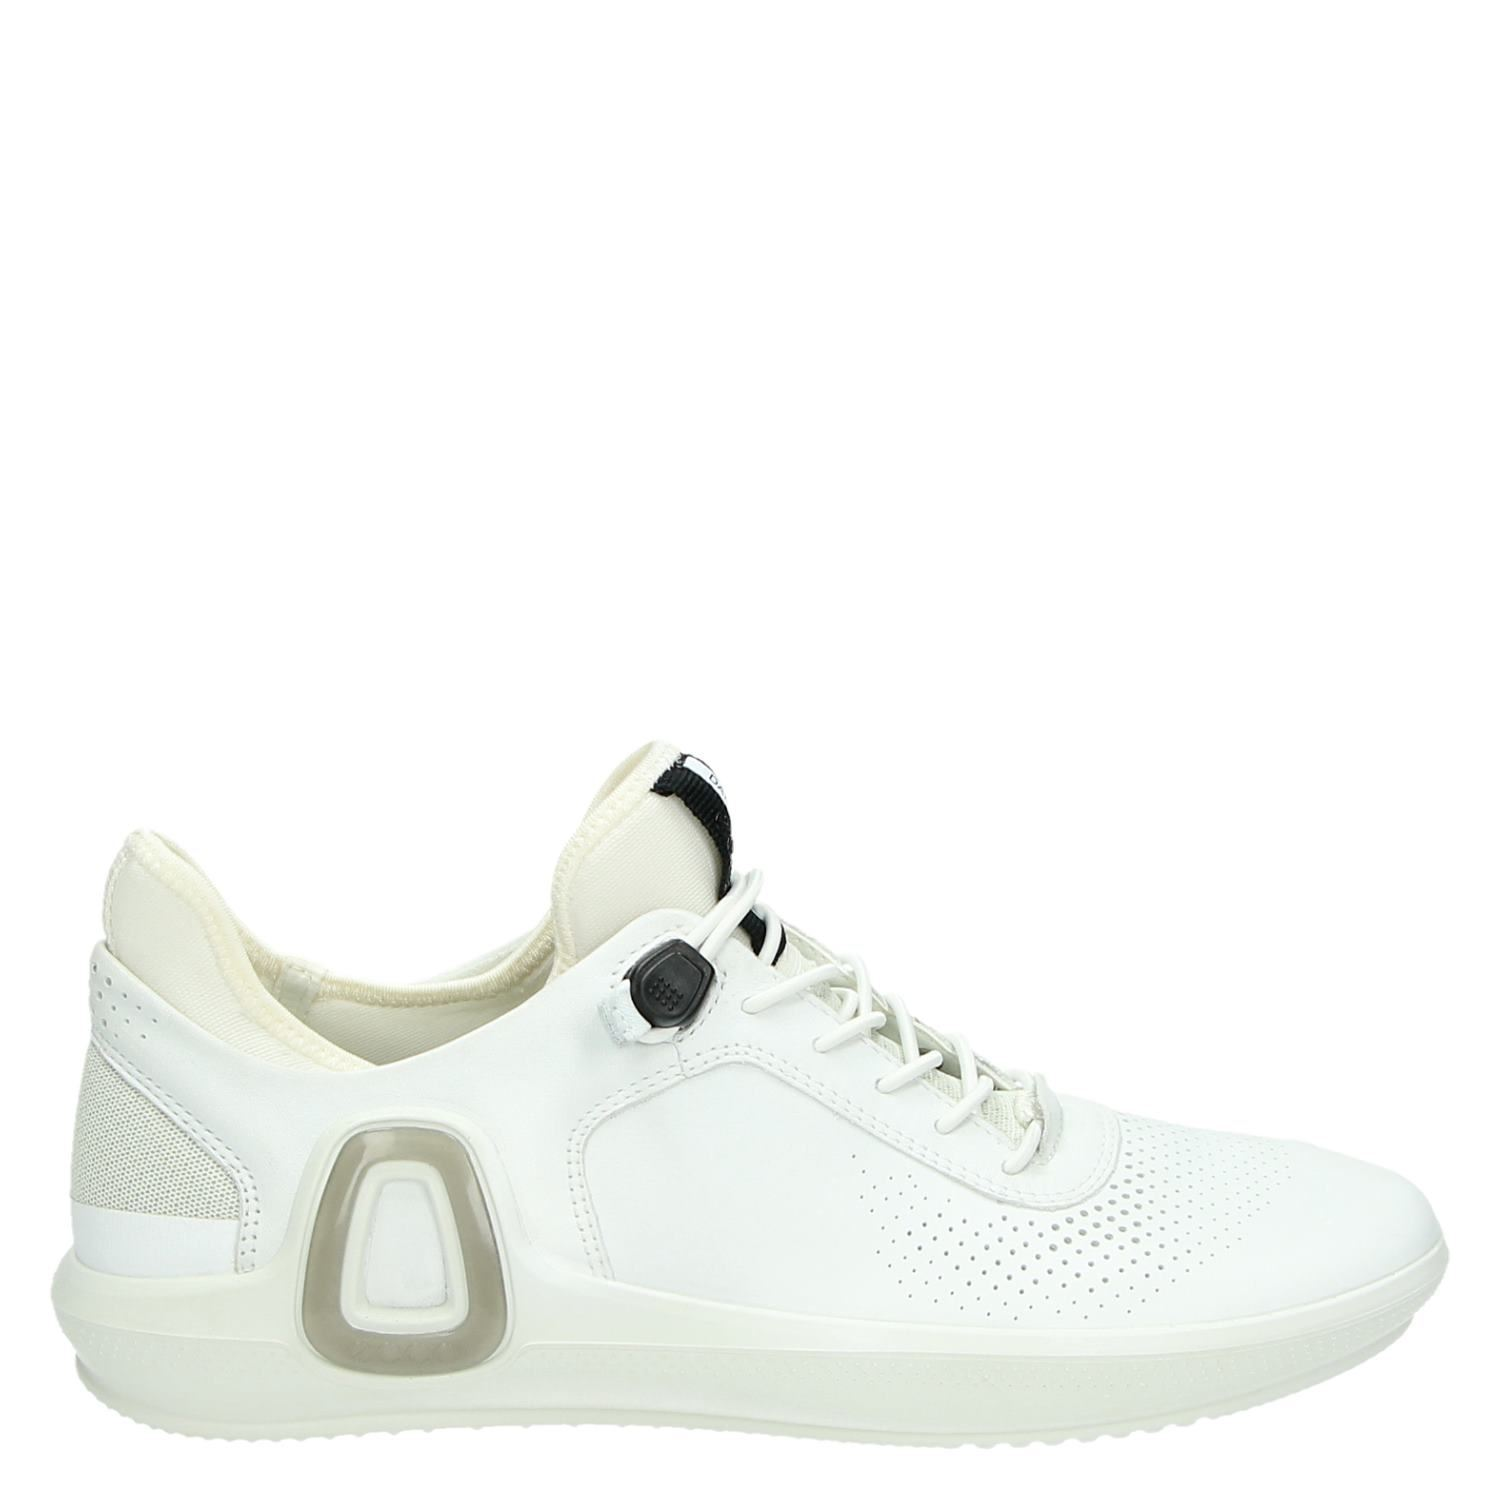 Intrinsic Dames Ecco Wit Lage Sneakers ZUdAwq5d